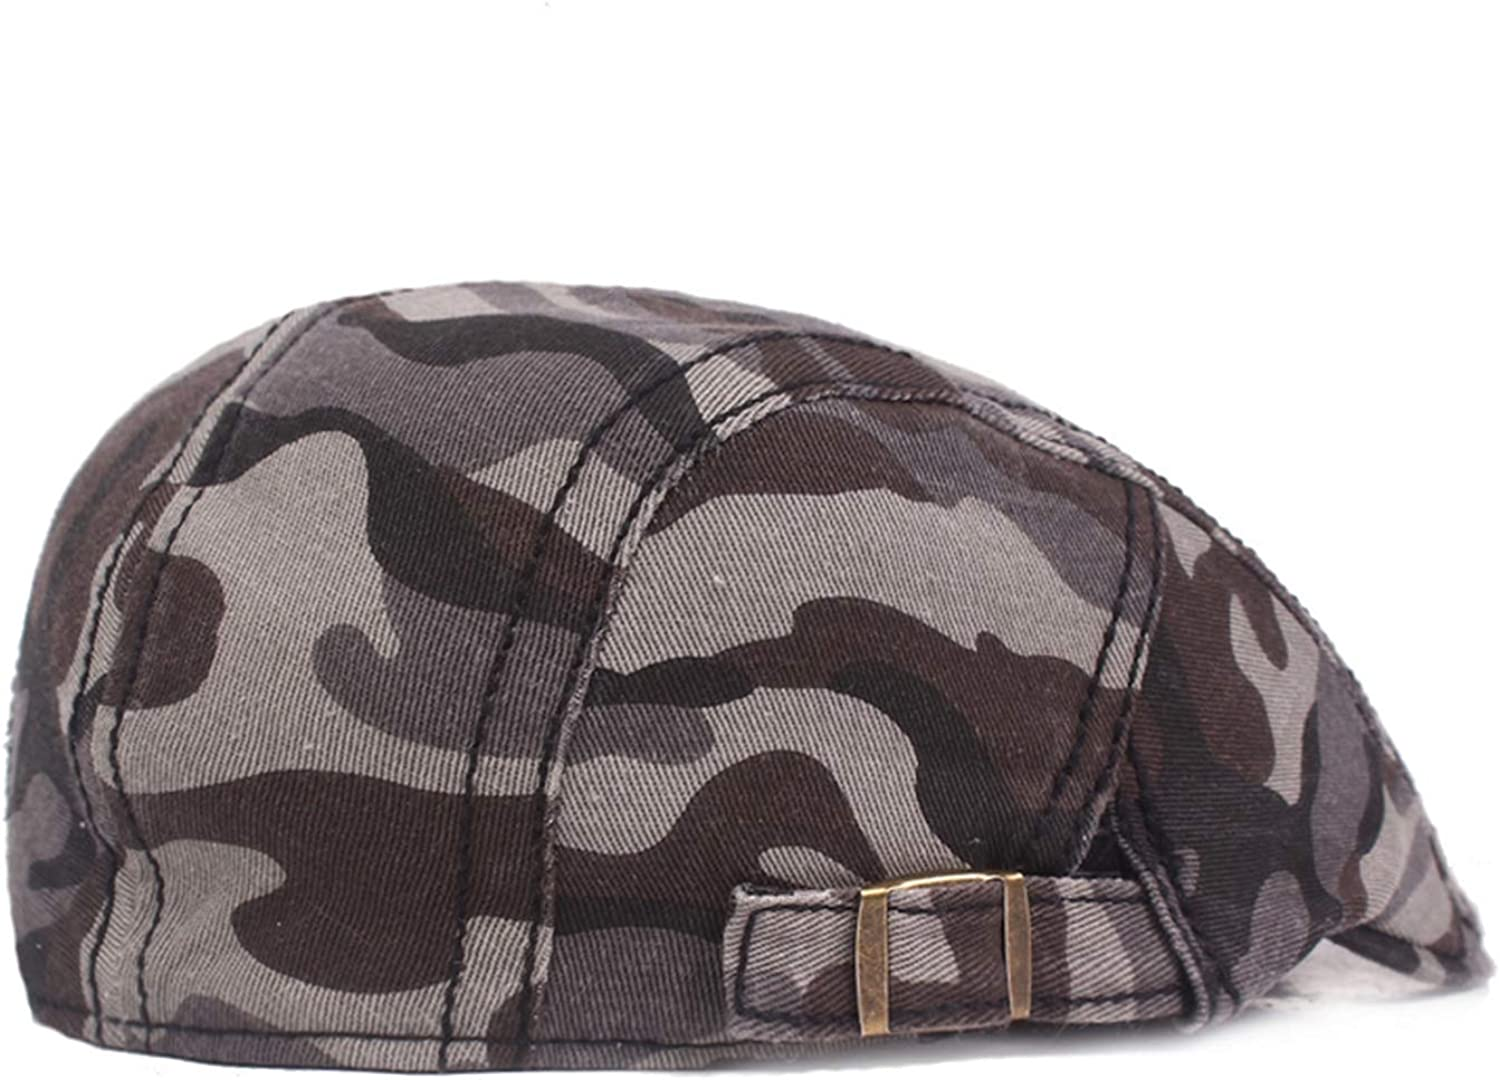 Red Summer Cotton Flat Cap Ivy Caps Men Women Burgundy Newsboy Cabbie Driver Solid Color Casual Camouflage